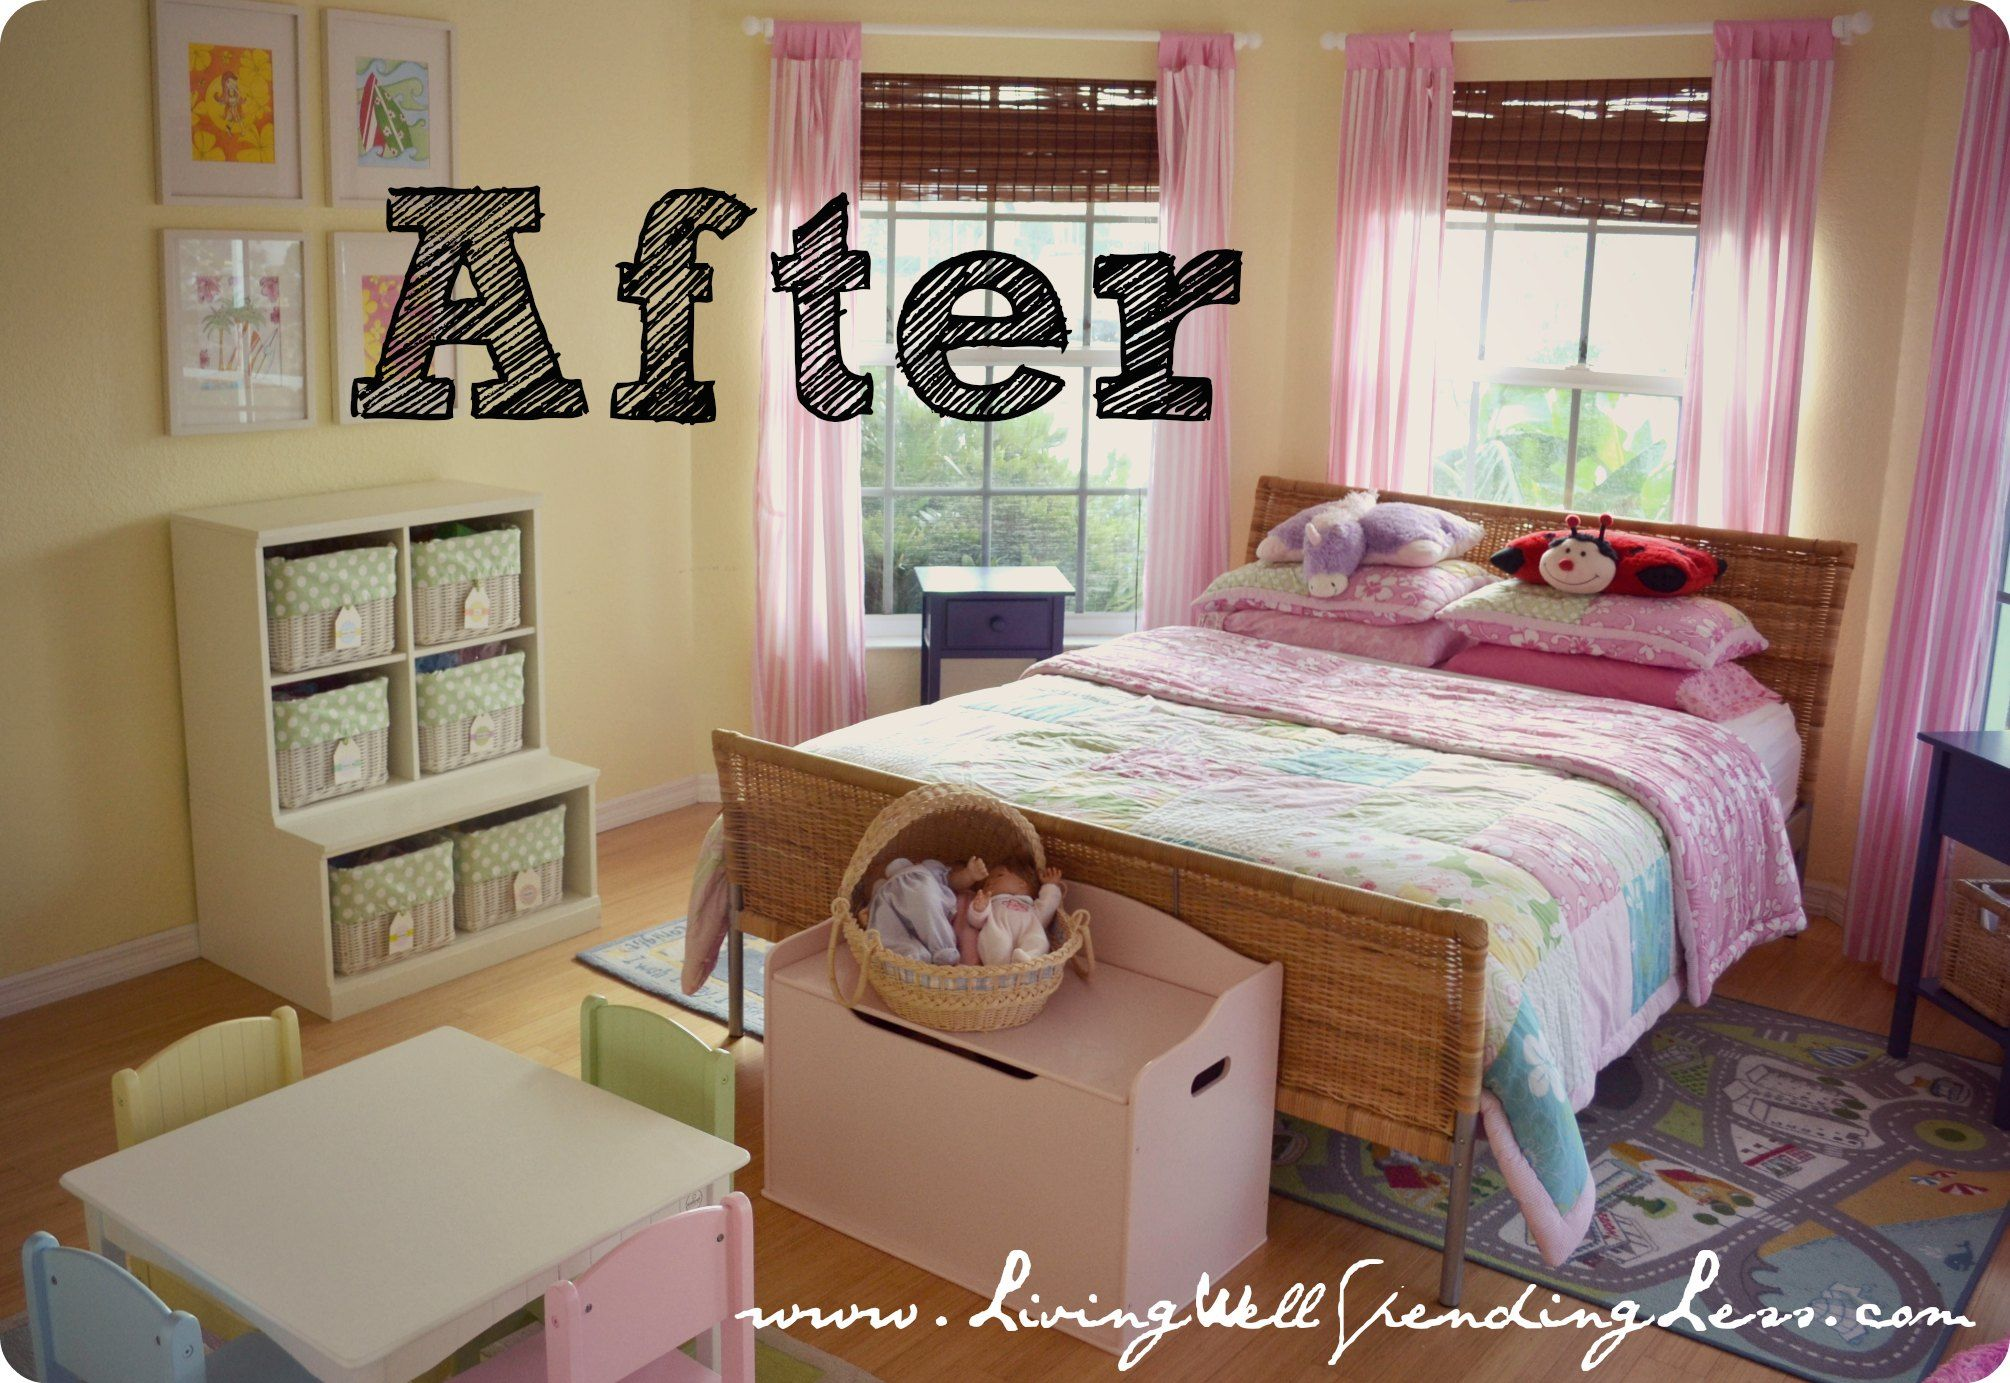 Great How To Organize Your Room For Kids 35 In Home Decor Kids Room Organization Cleaning Kids Room Organization Bedroom